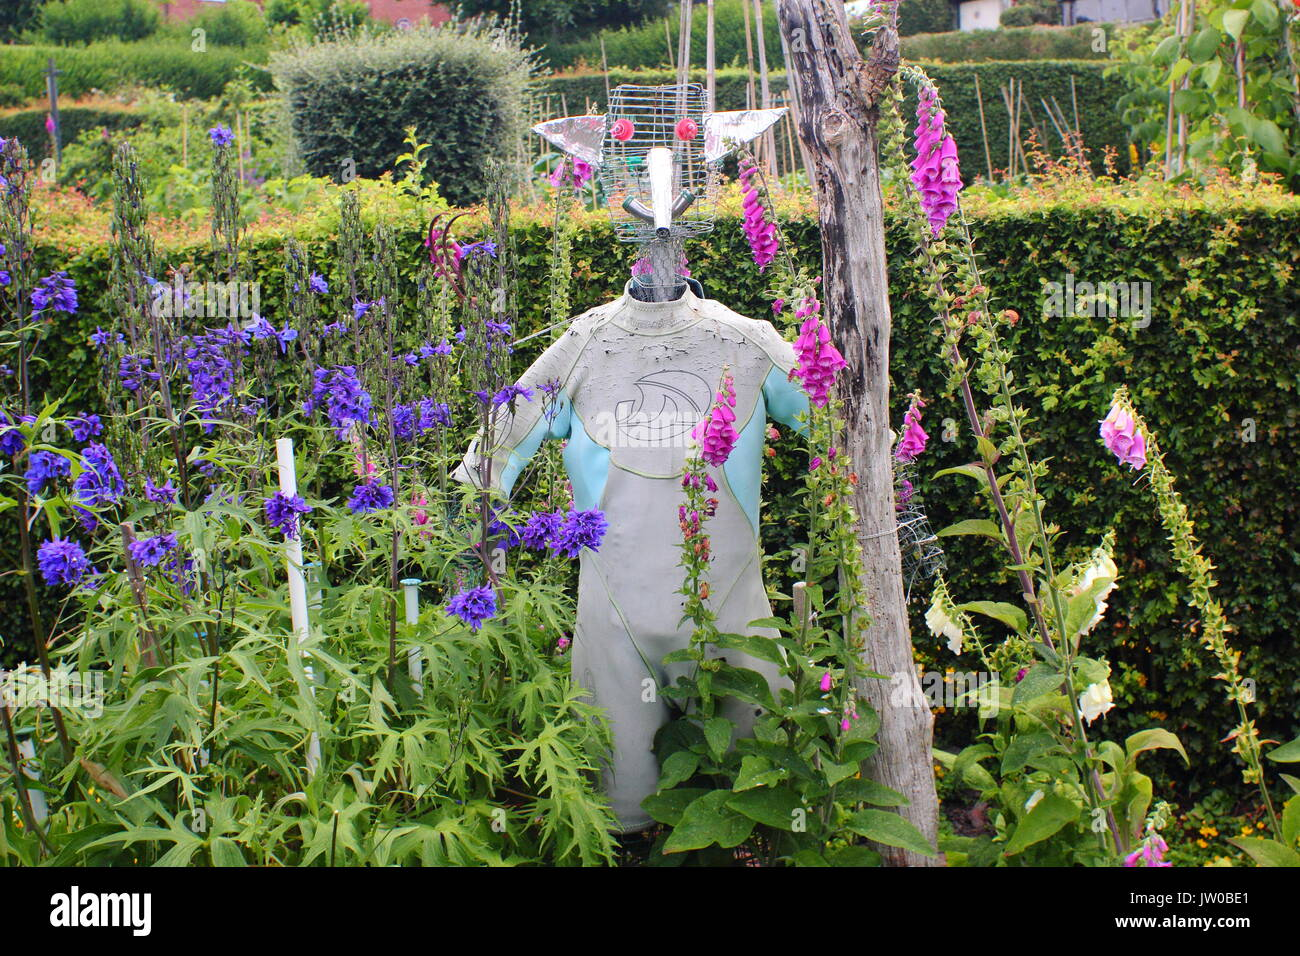 A scarecrow in a suburban allotment garden during an open allotment event in summer, near Sheffield, England, UK - Stock Image